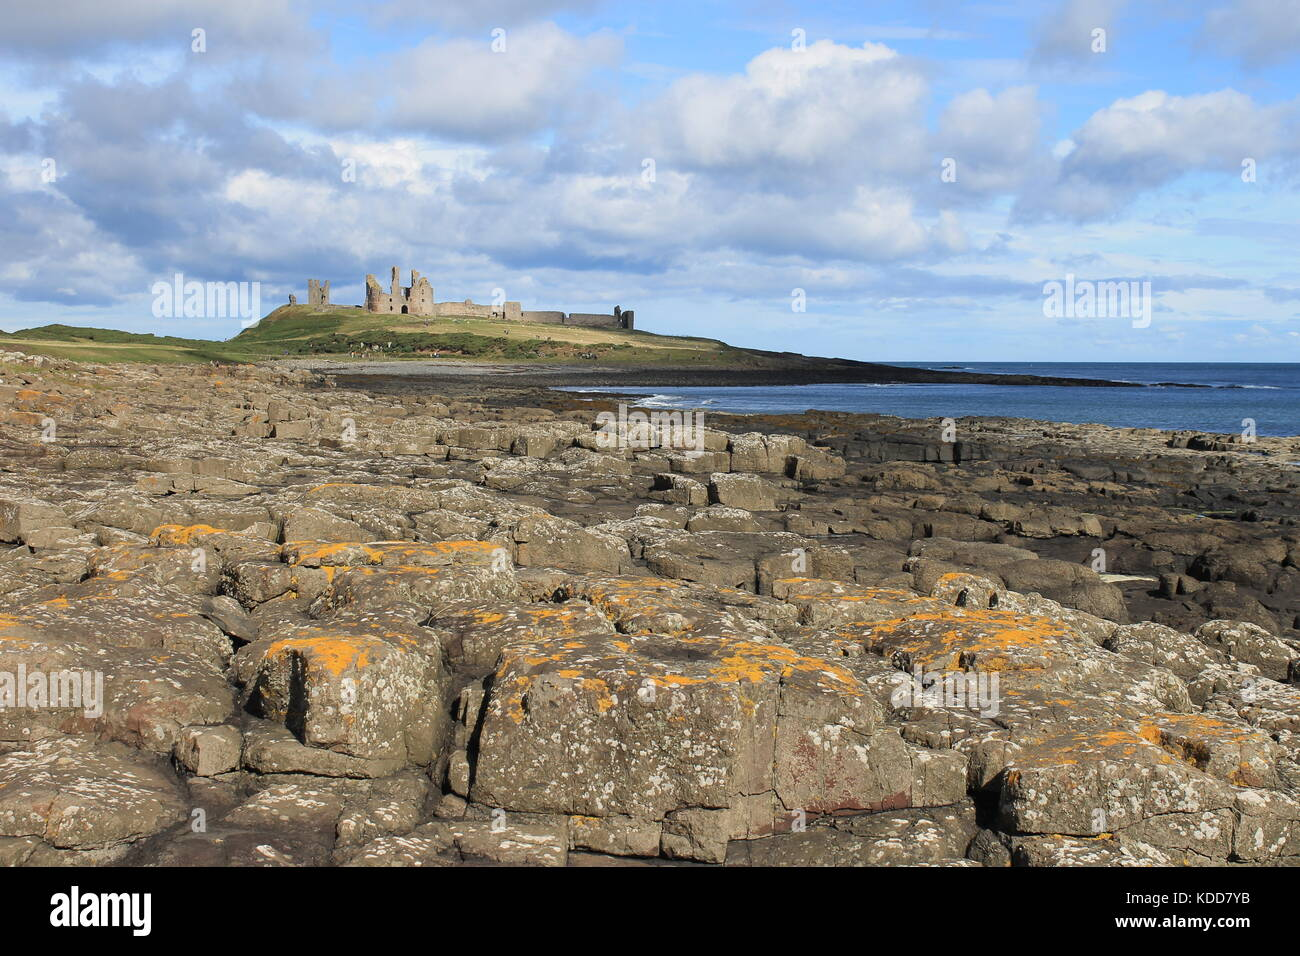 Dunstanburgh Castle and rocky foreshore of the Northumbrian coast north of Craster, Northumberland, UK - Stock Image